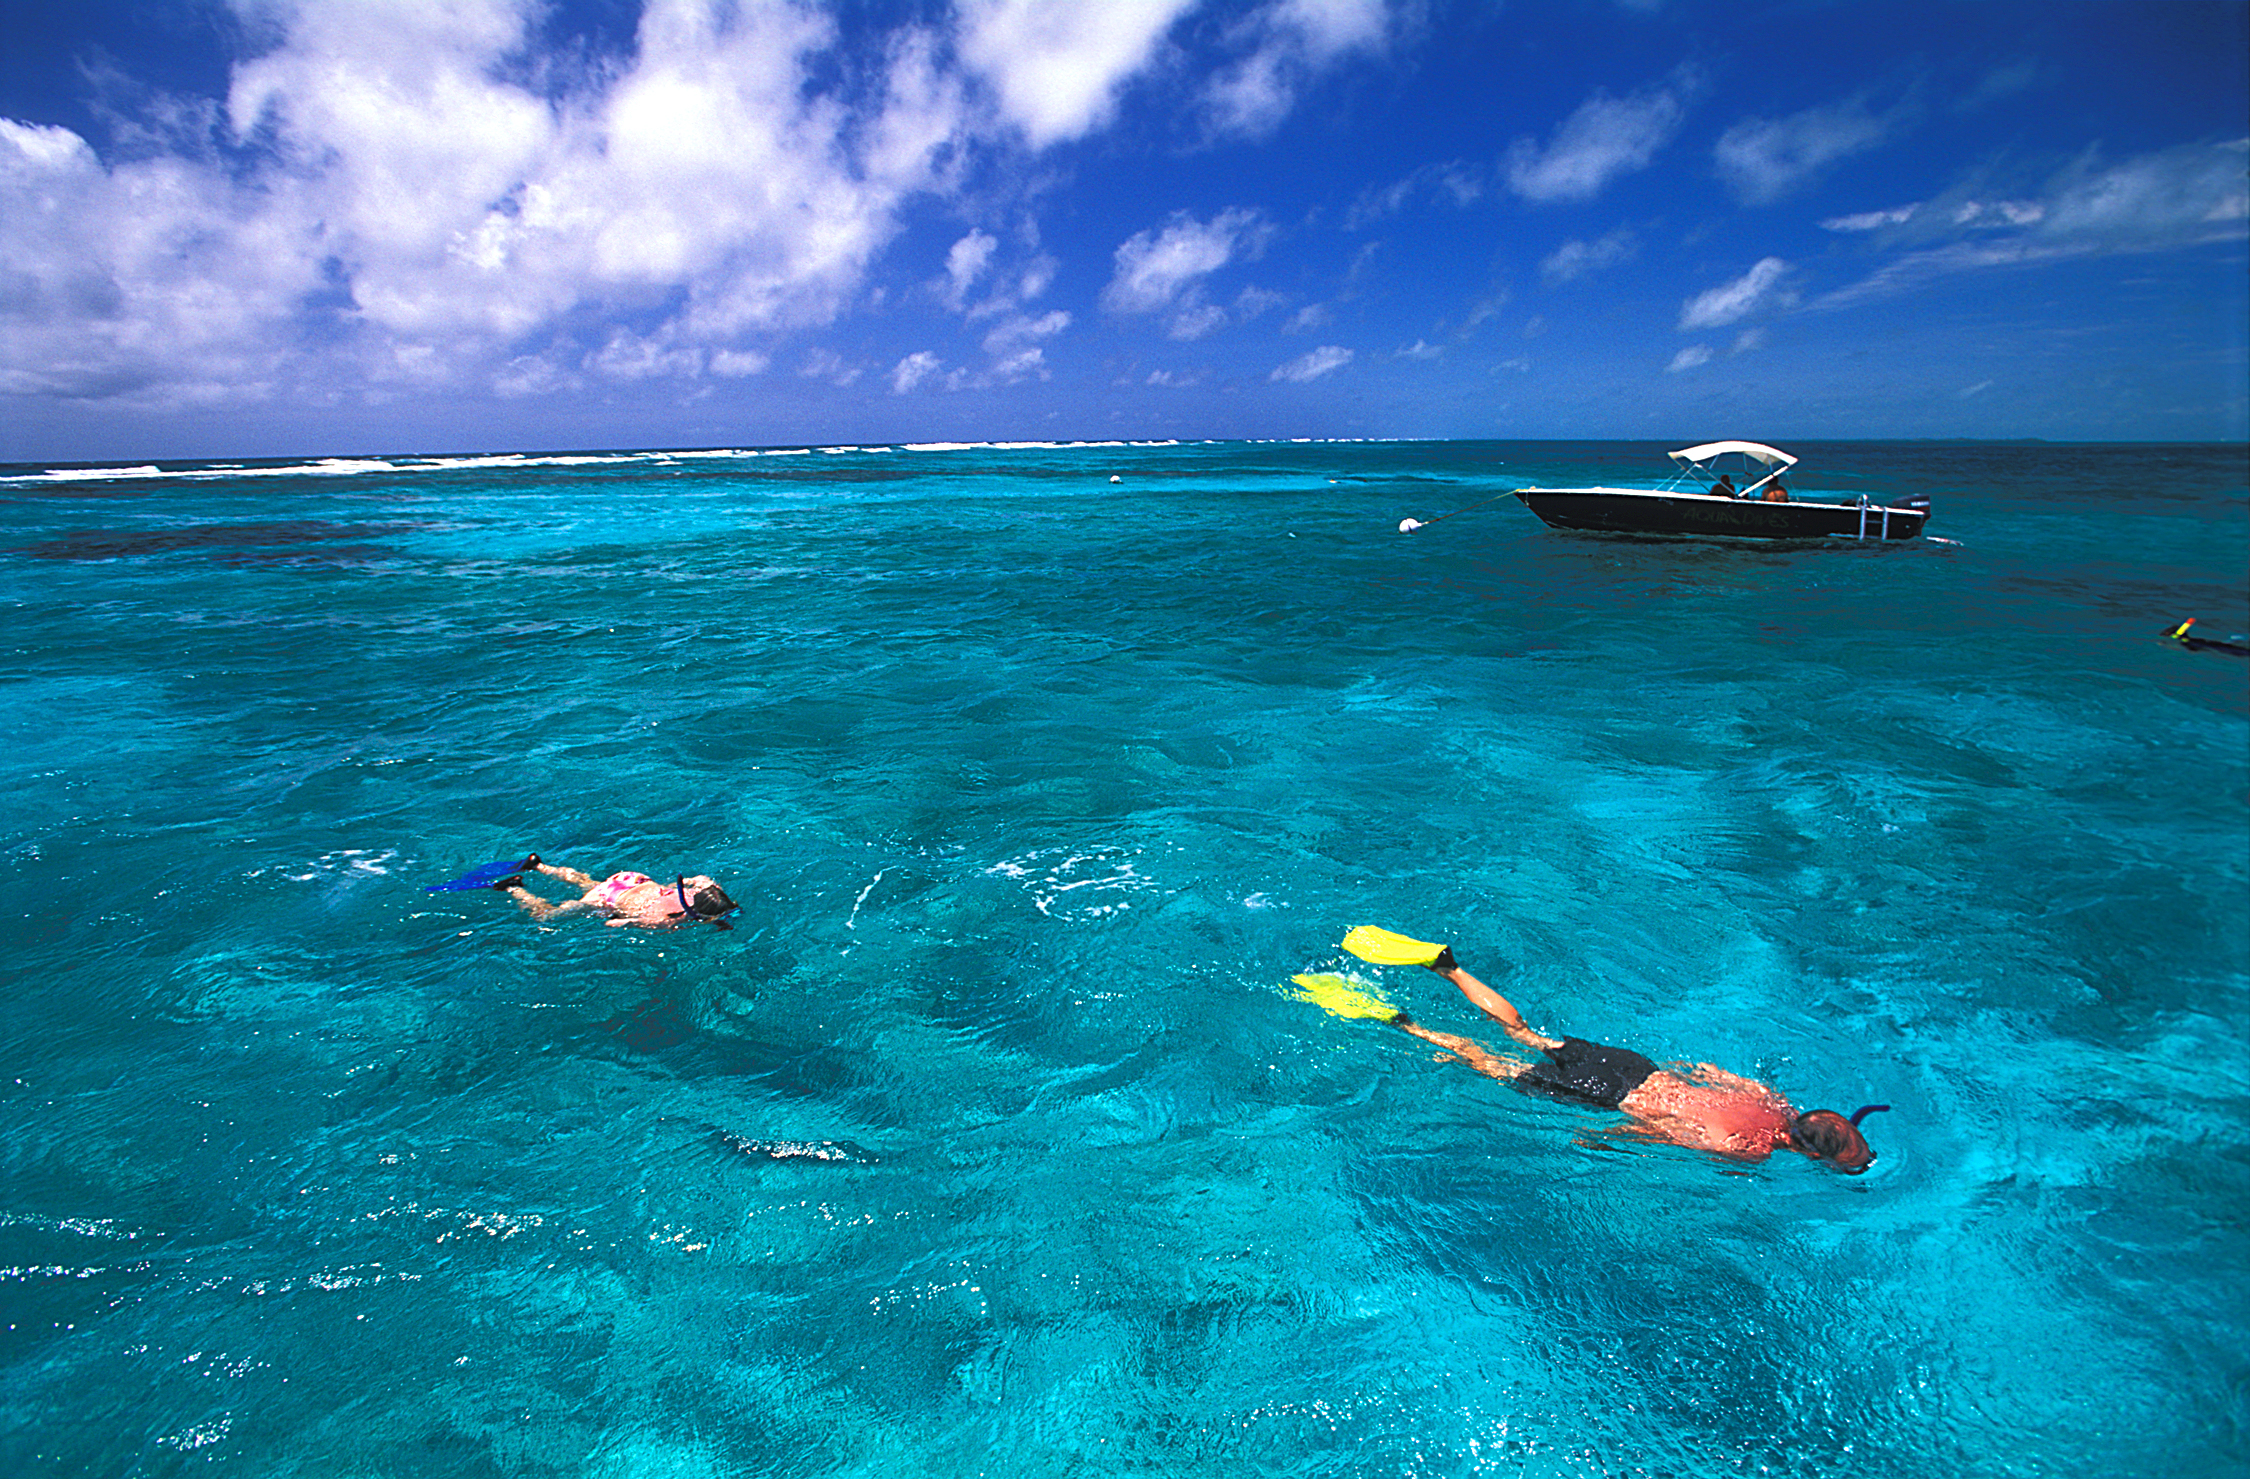 Diving in the azure waters off of Belize